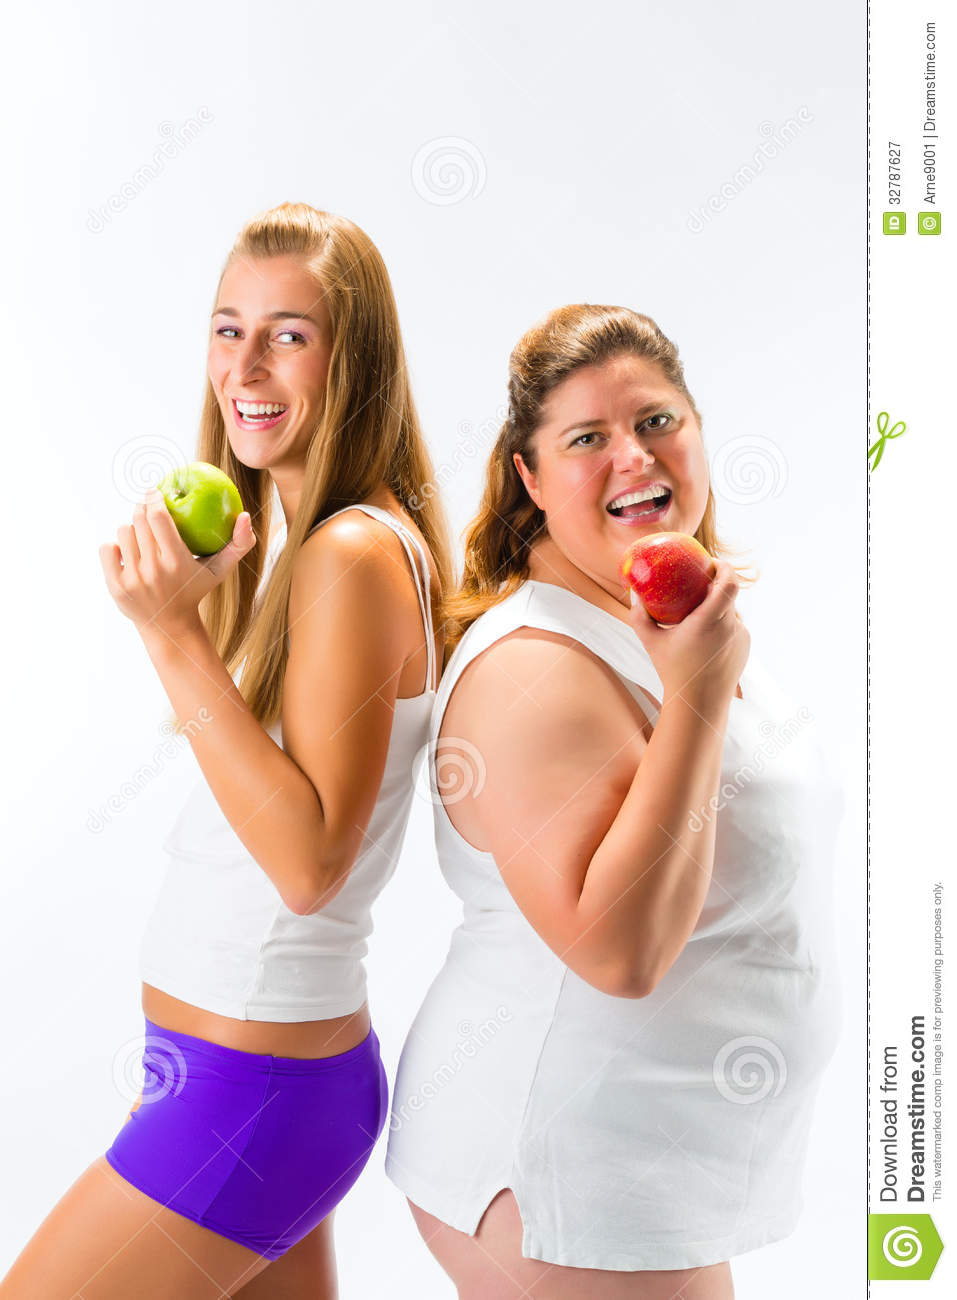 thin and fat woman holding apple in hand stock image - image of